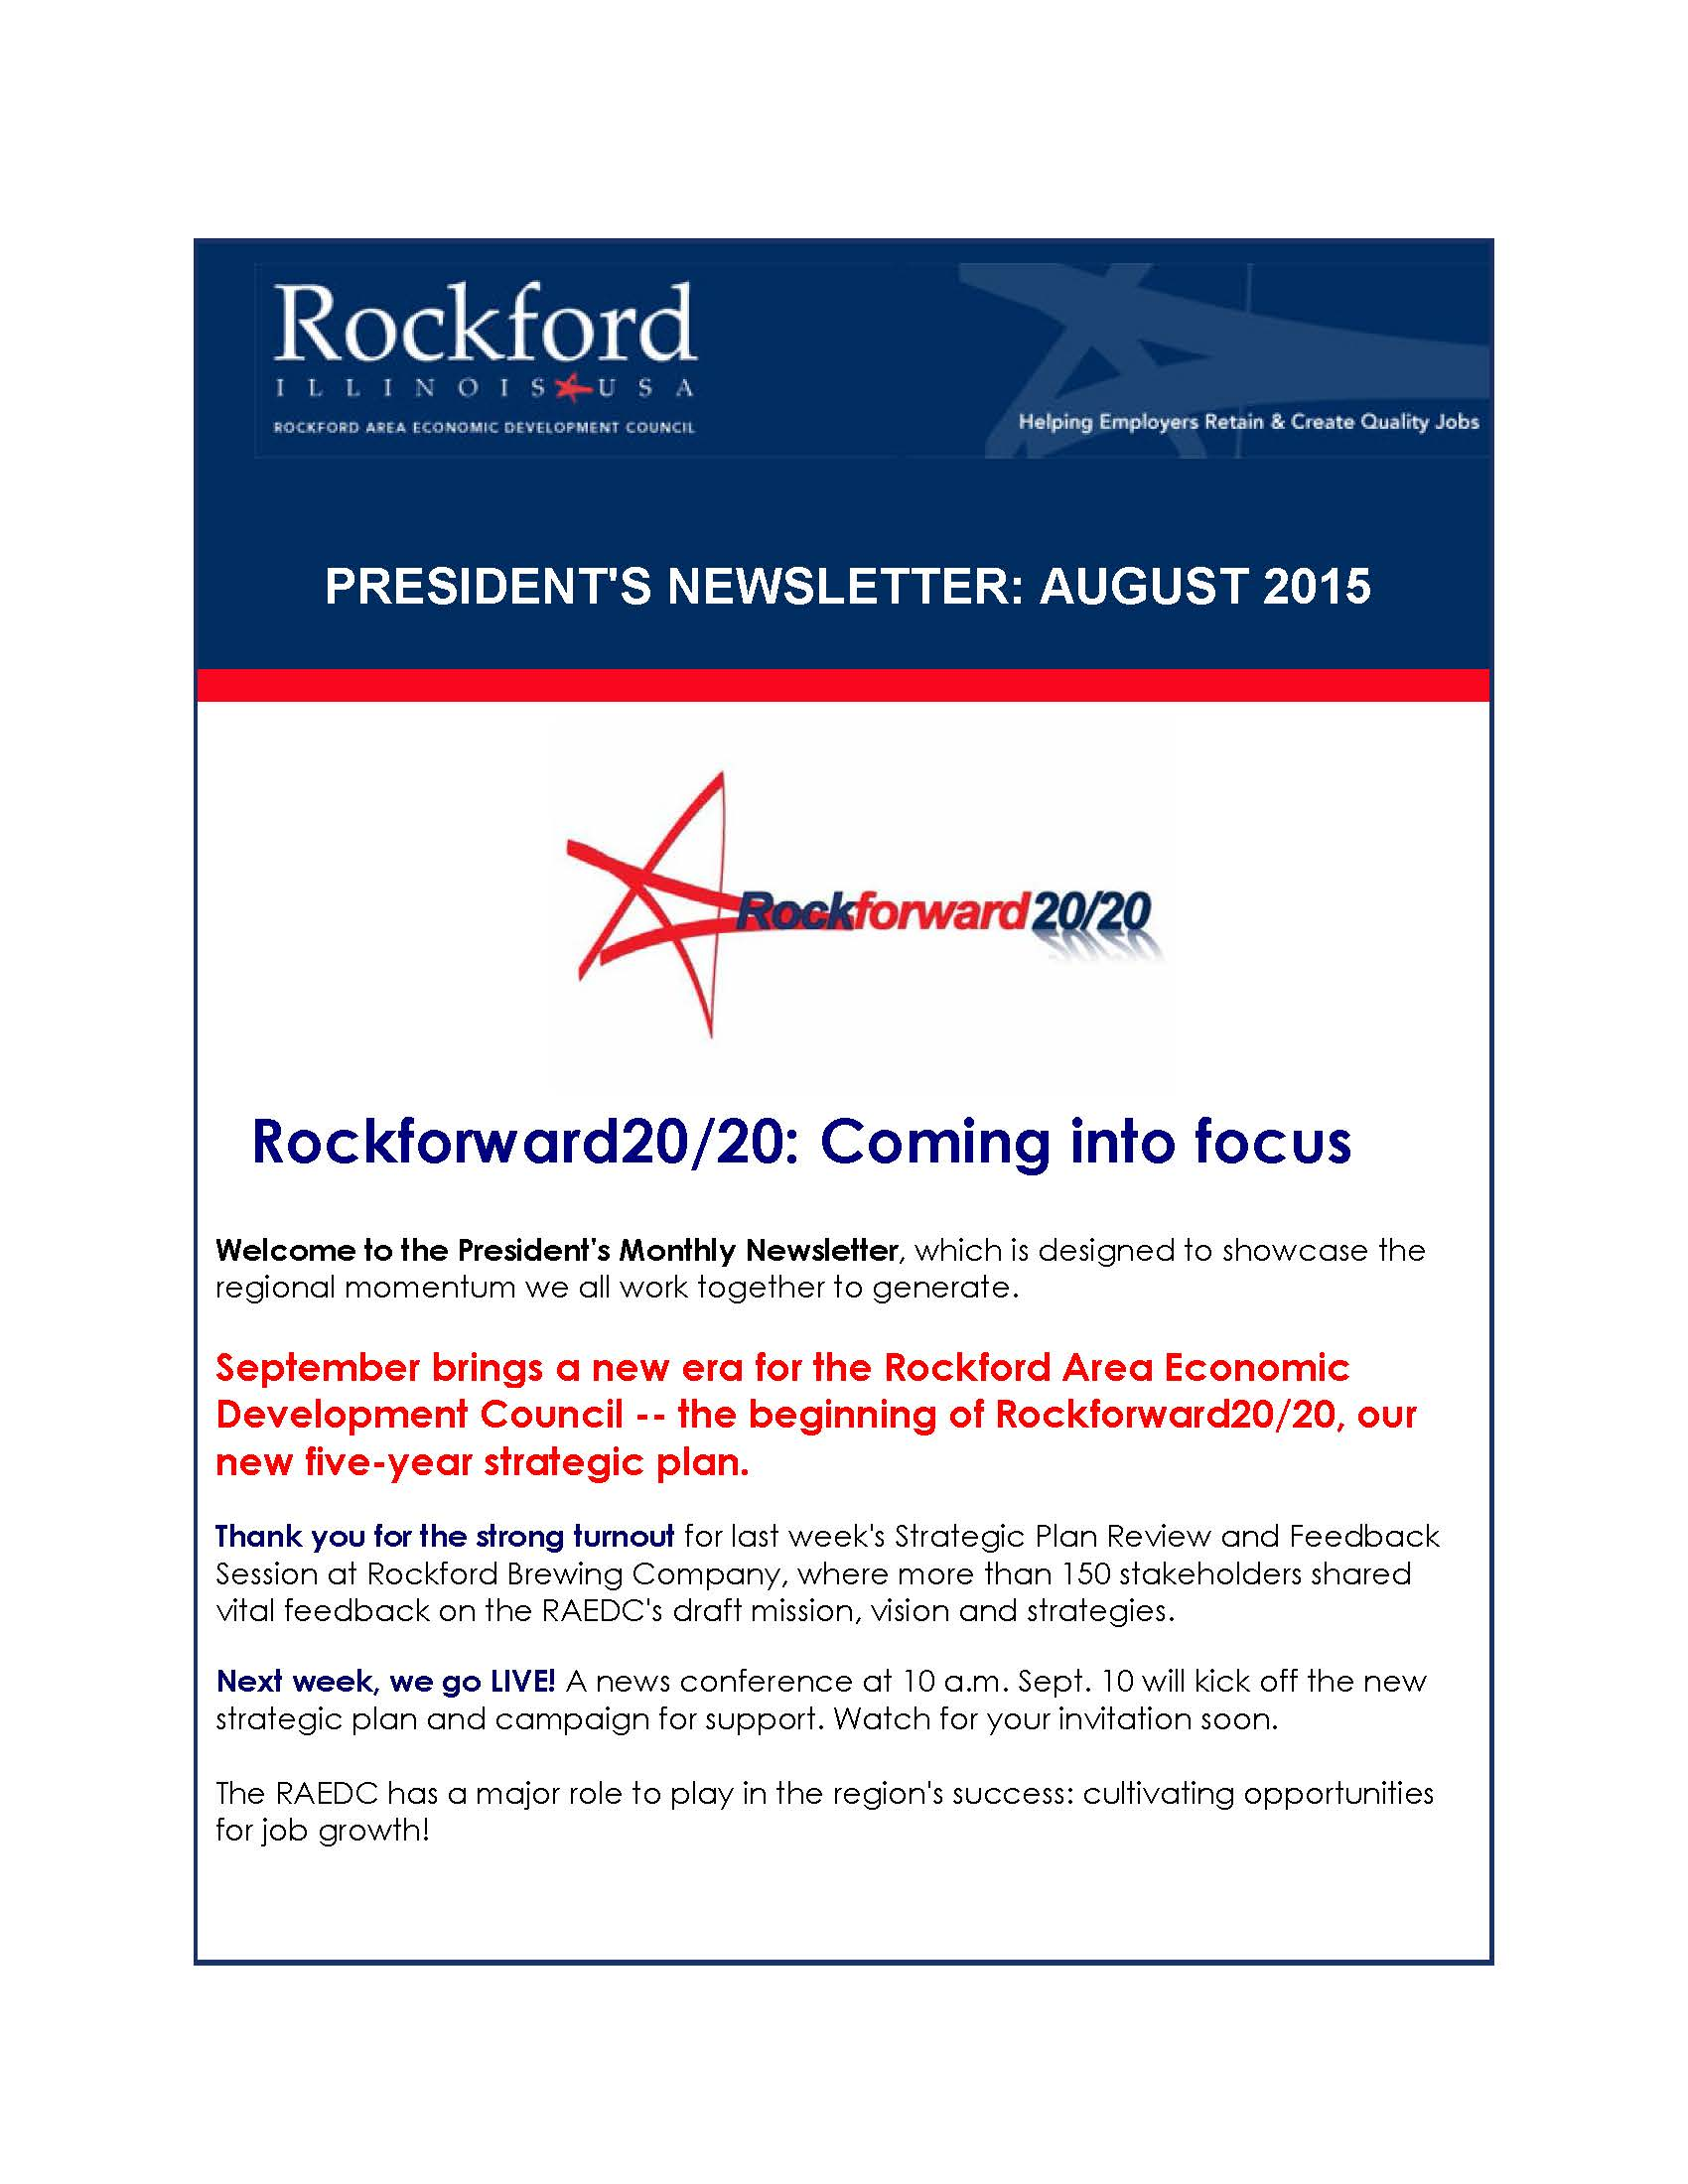 August President's Newsletter: Our 20/20 vision